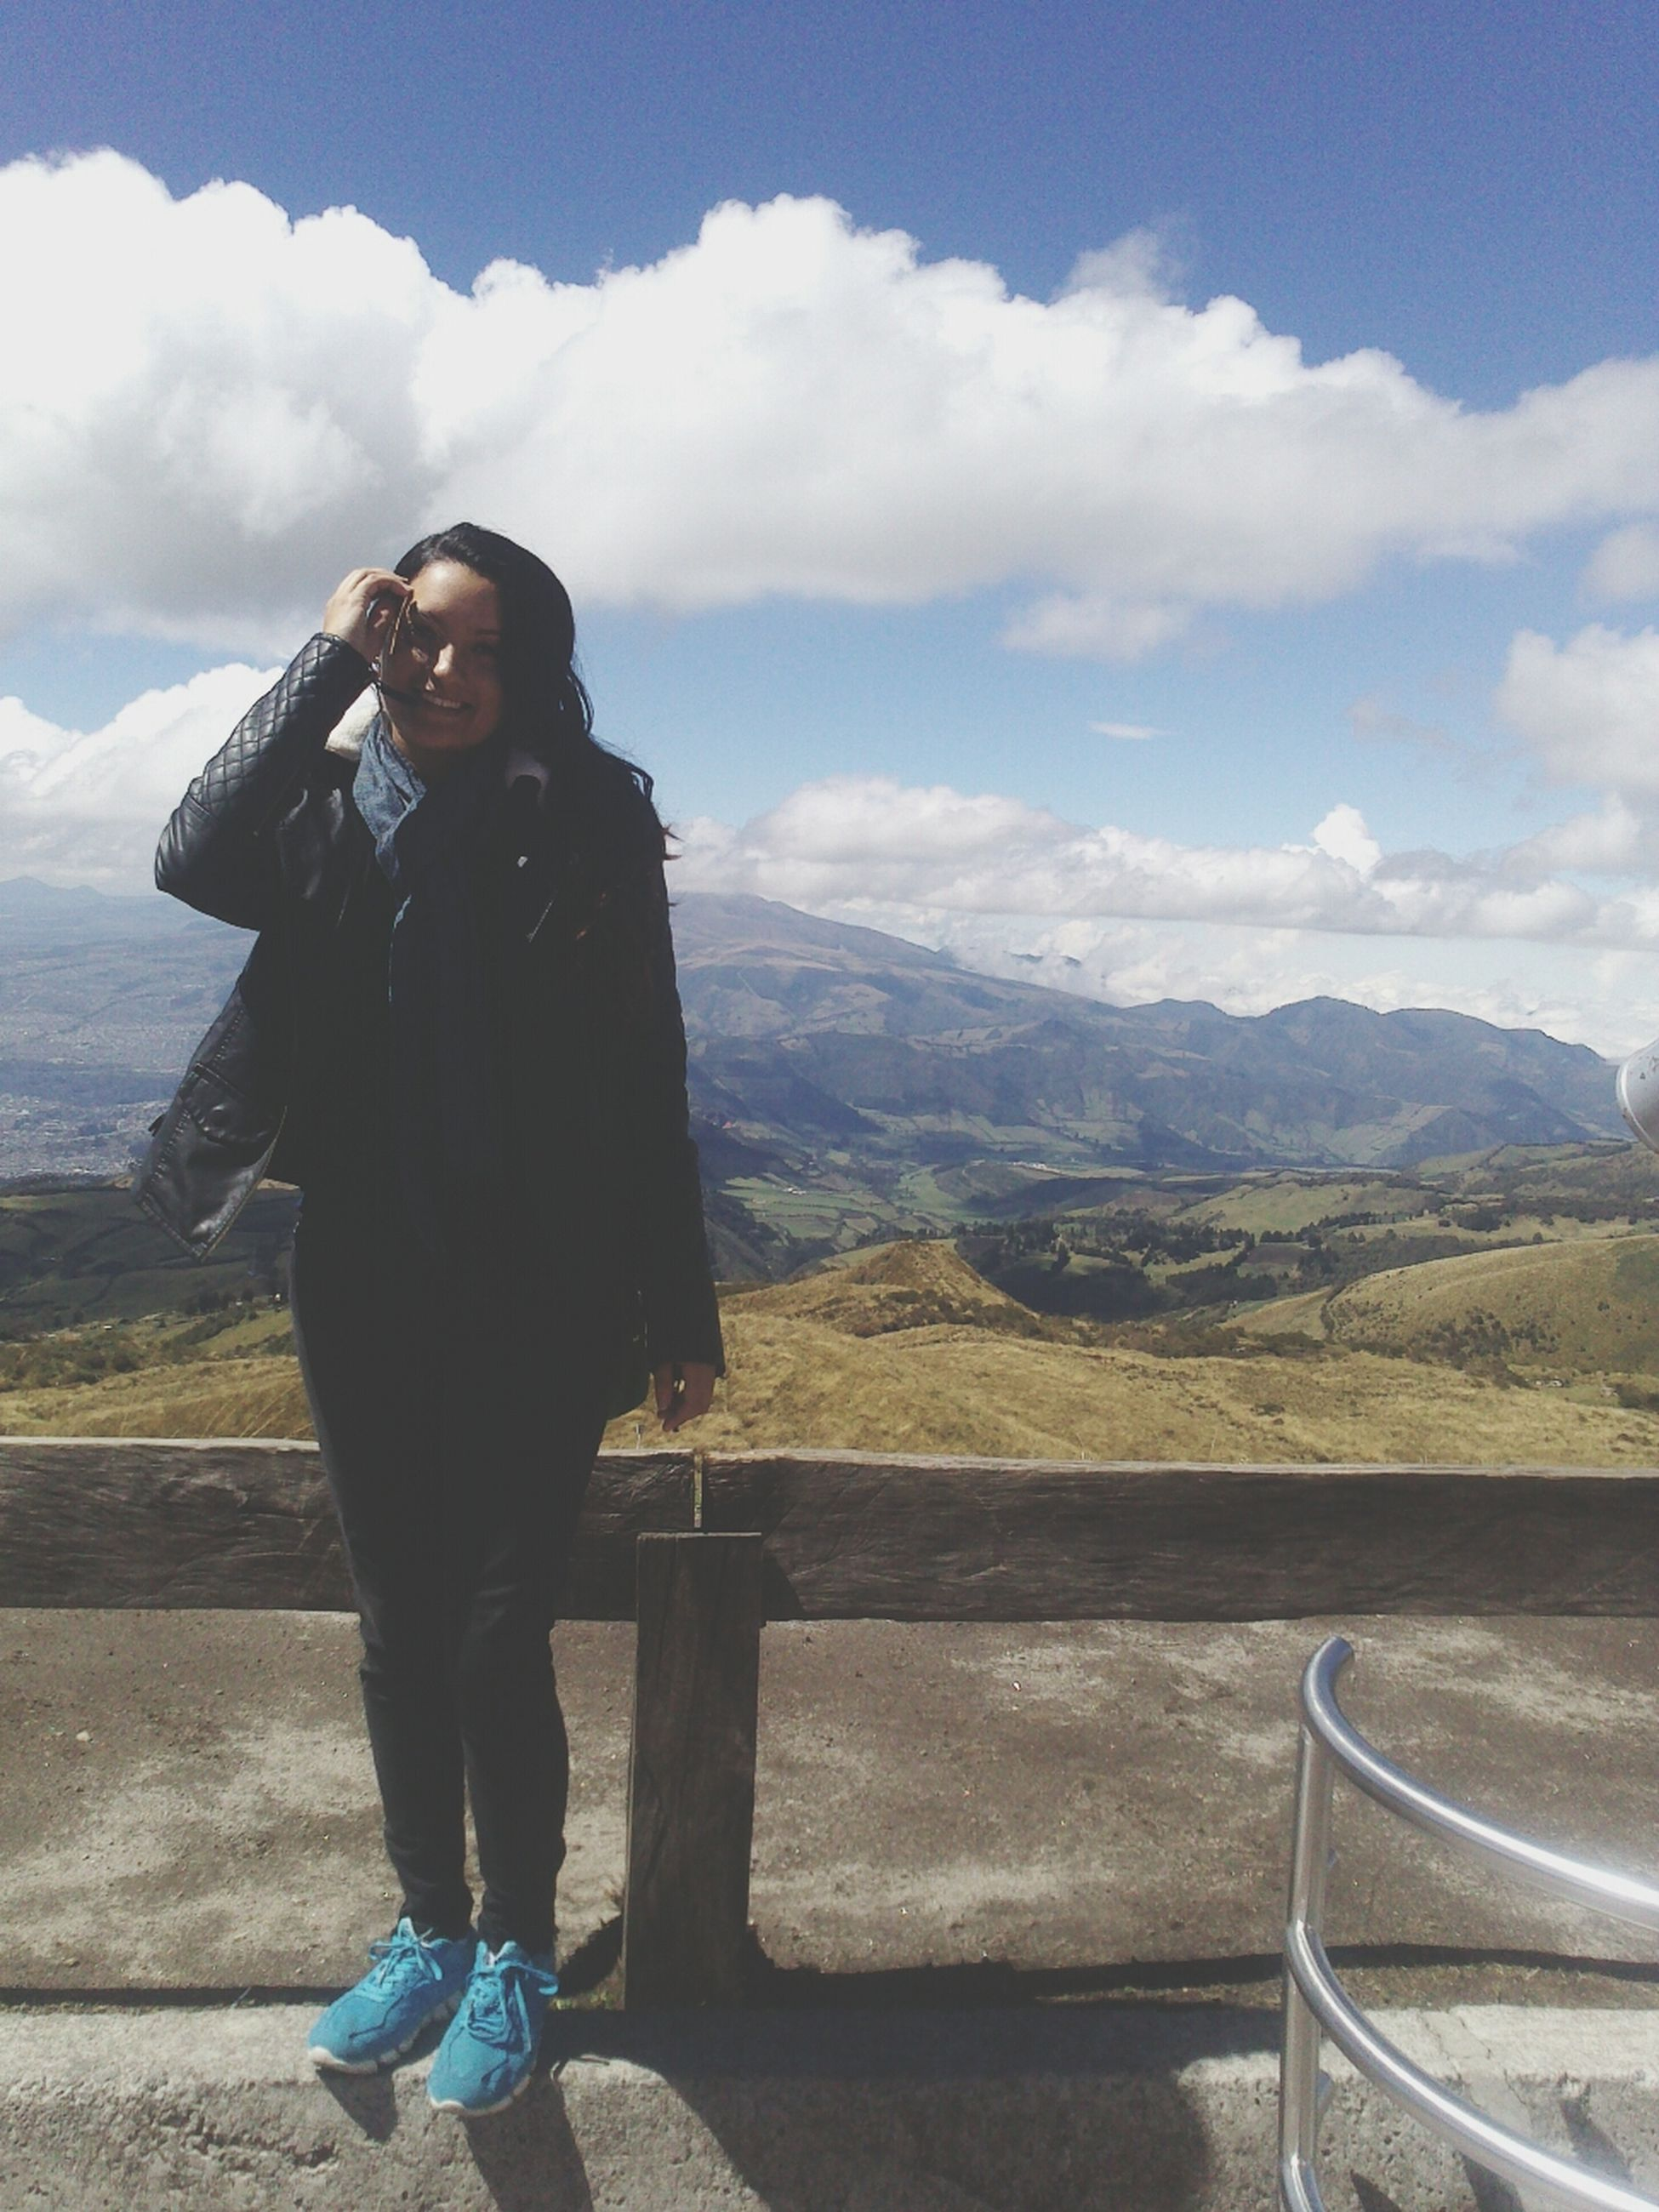 young adult, lifestyles, person, casual clothing, mountain, leisure activity, sky, young women, standing, portrait, looking at camera, mountain range, cloud - sky, full length, three quarter length, smiling, landscape, front view